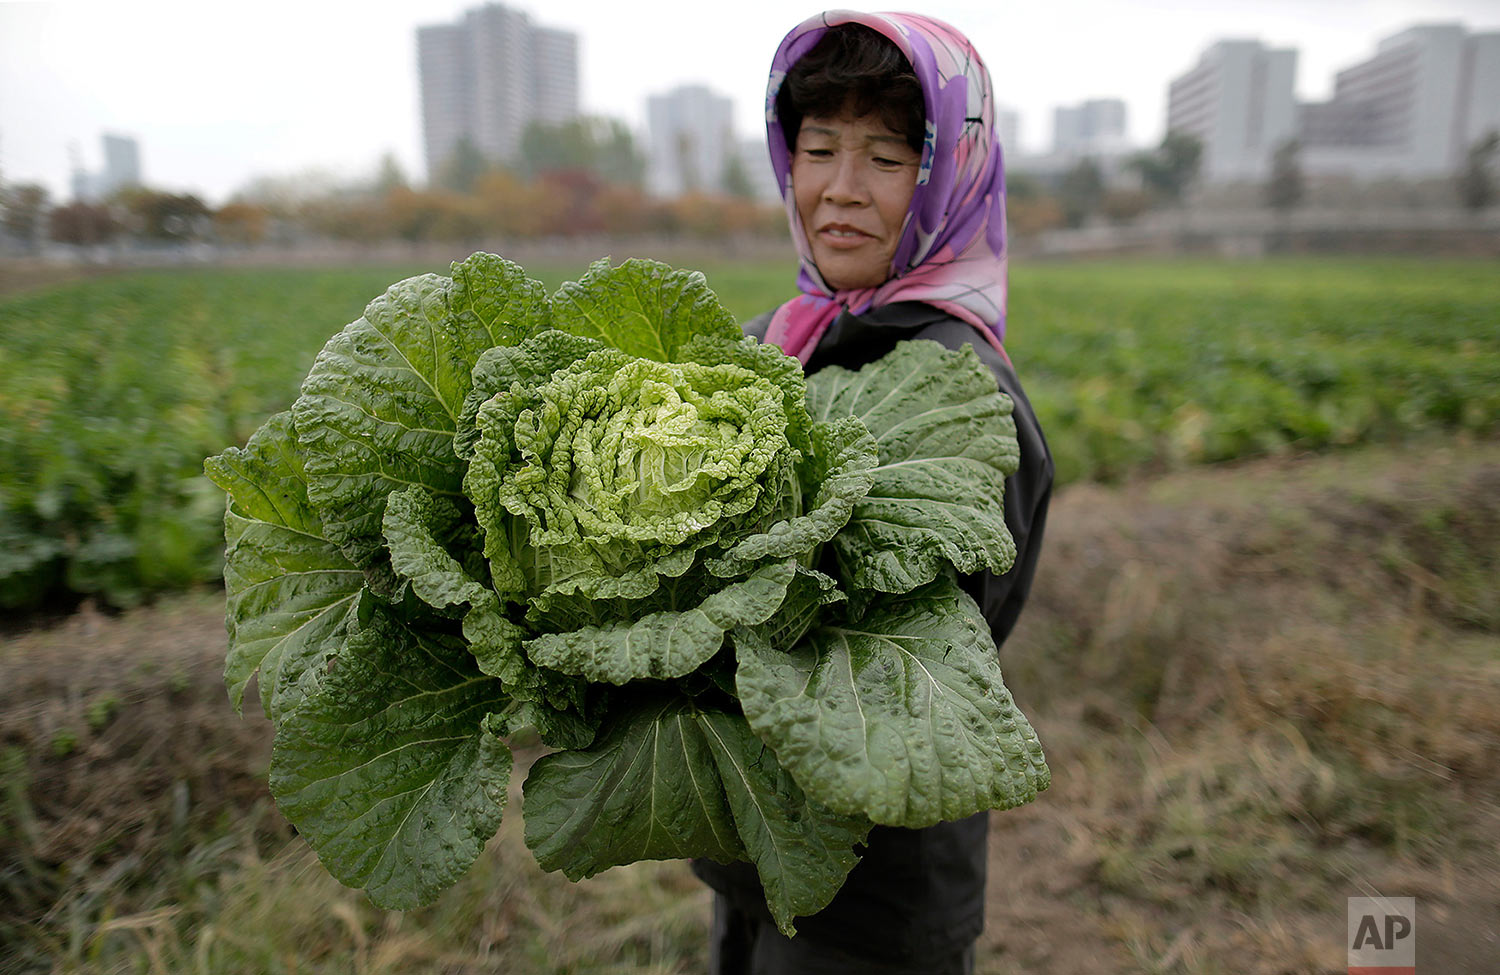 A farmer carries a fully grown cabbage after plucking it out from the main crop that will be harvested early next month and used to make Kimchi, at the Chilgol vegetable farm on the outskirts of Pyongyang, North Korea, on Oct. 24, 2014. After suffering a near cataclysmic famine in the 1990s, North Korea has since managed to increase its agricultural production to what international organizations believe is closer to the self-sufficiency level than the country has seen in years. (AP Photo/Wong Maye-E)